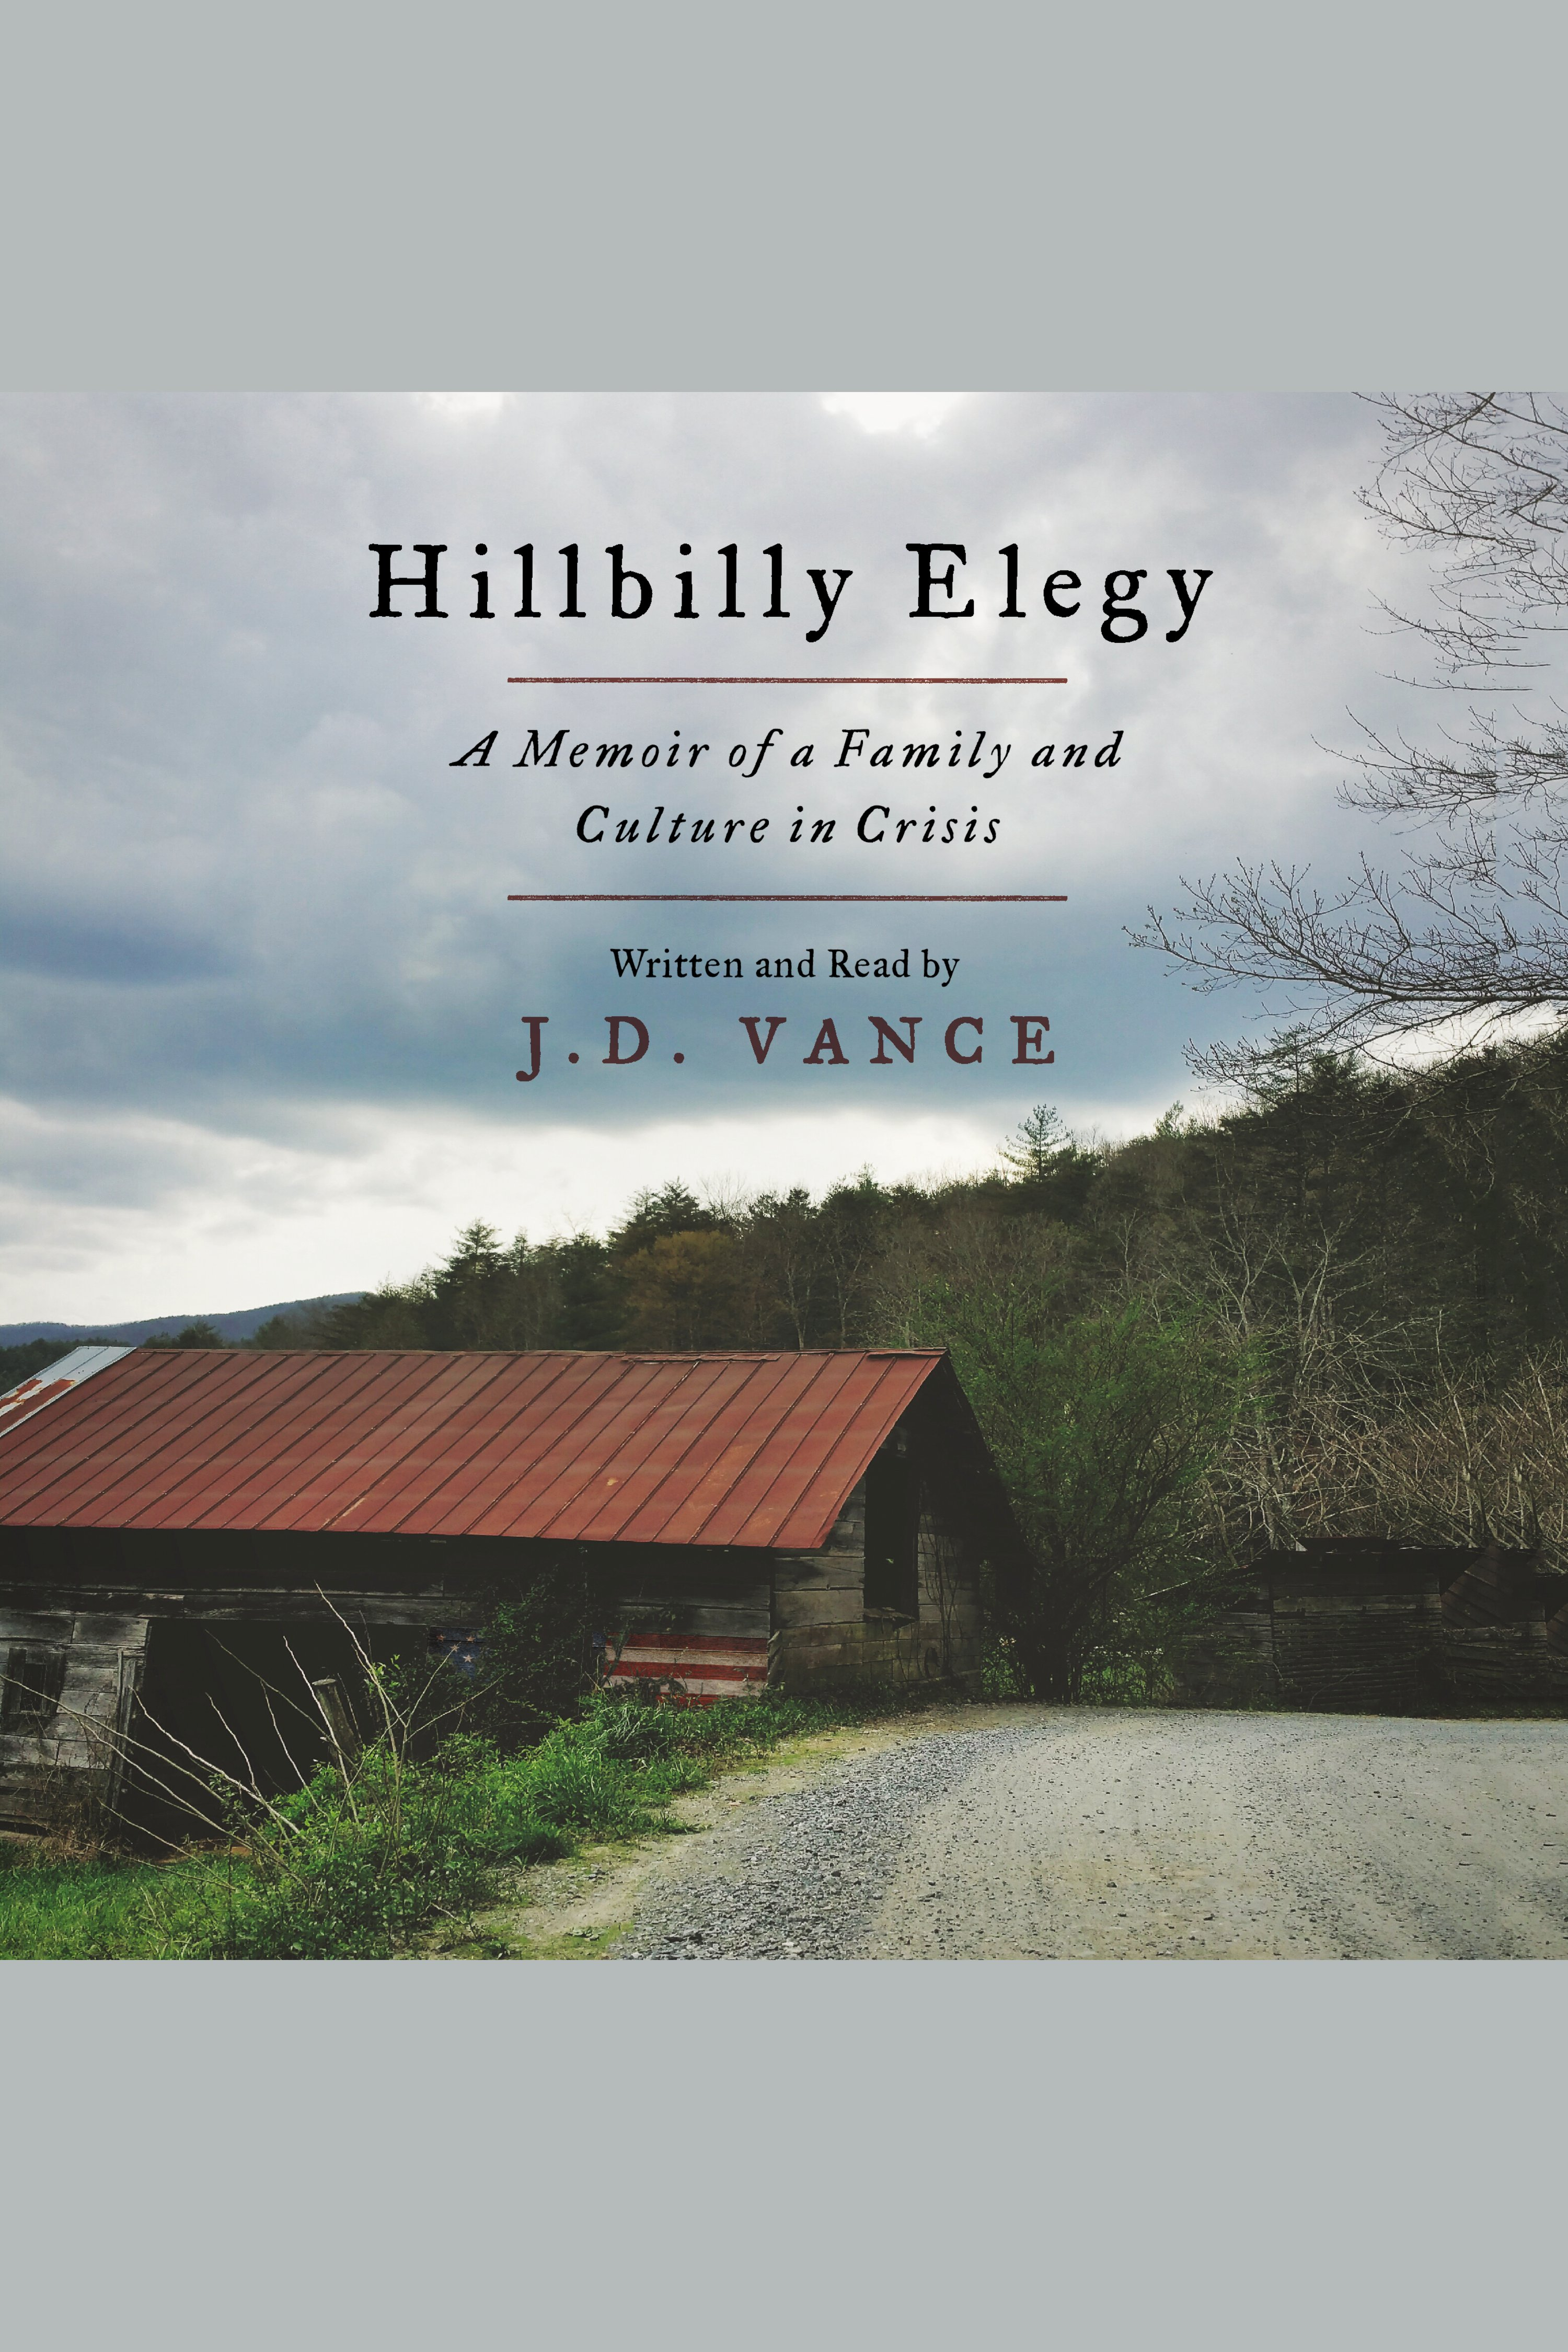 Hillbilly Elegy[AUDIO EBOOK] A Memoir of a Family and Culture in Crisis